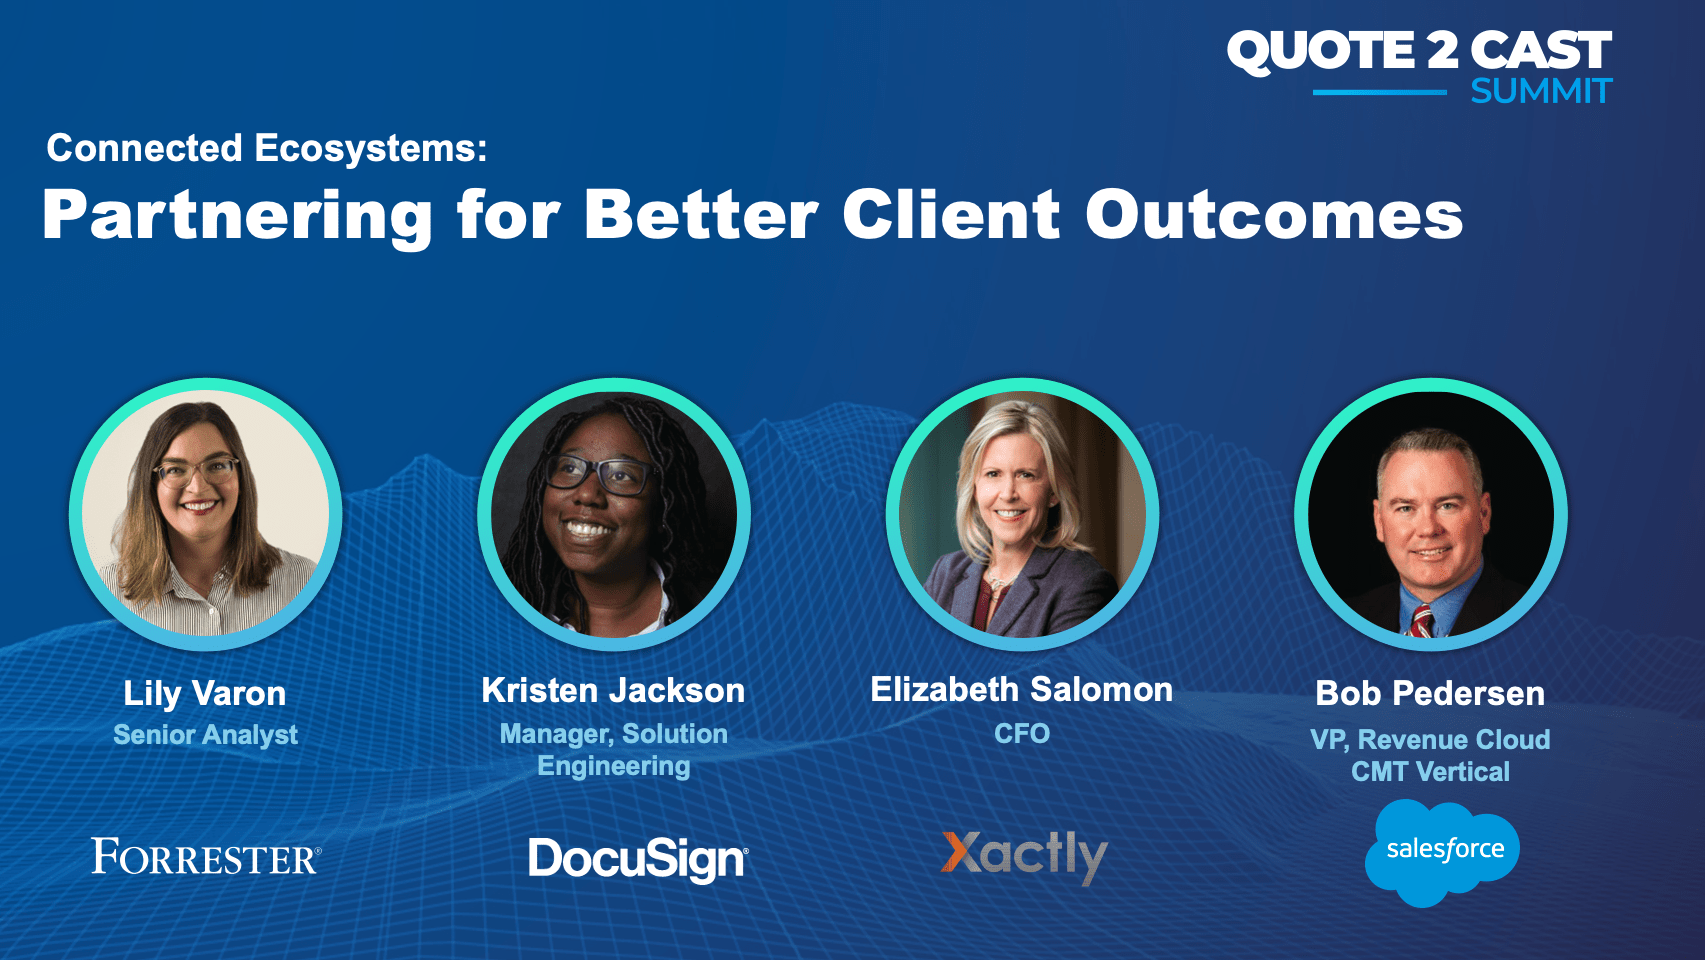 Q2Cast 2021: Connected Ecosystem – Partnering for Better Client Outcomes